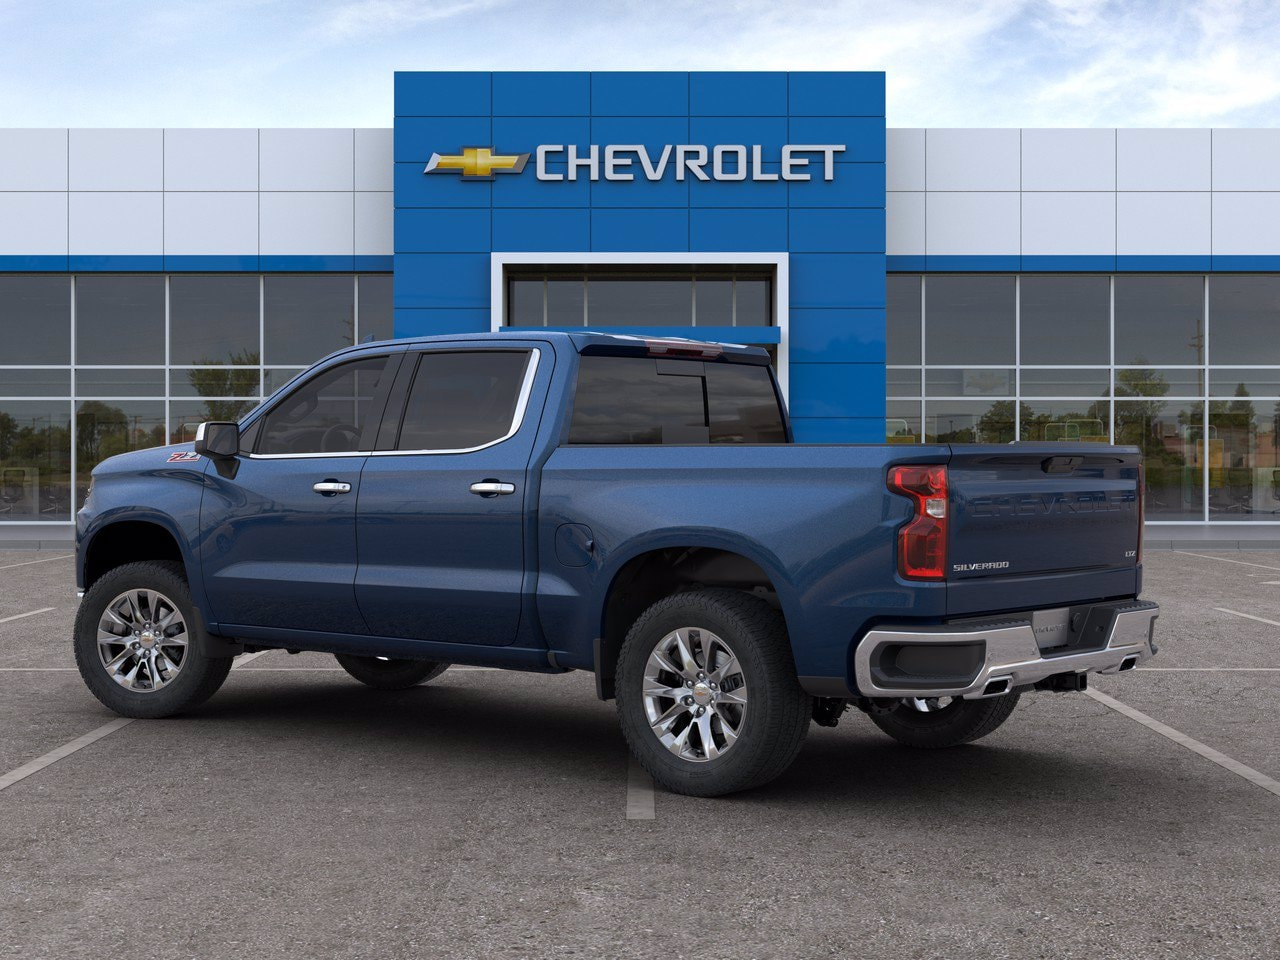 2020 Chevrolet Silverado 1500 Crew Cab 4x4, Pickup #C201434 - photo 4